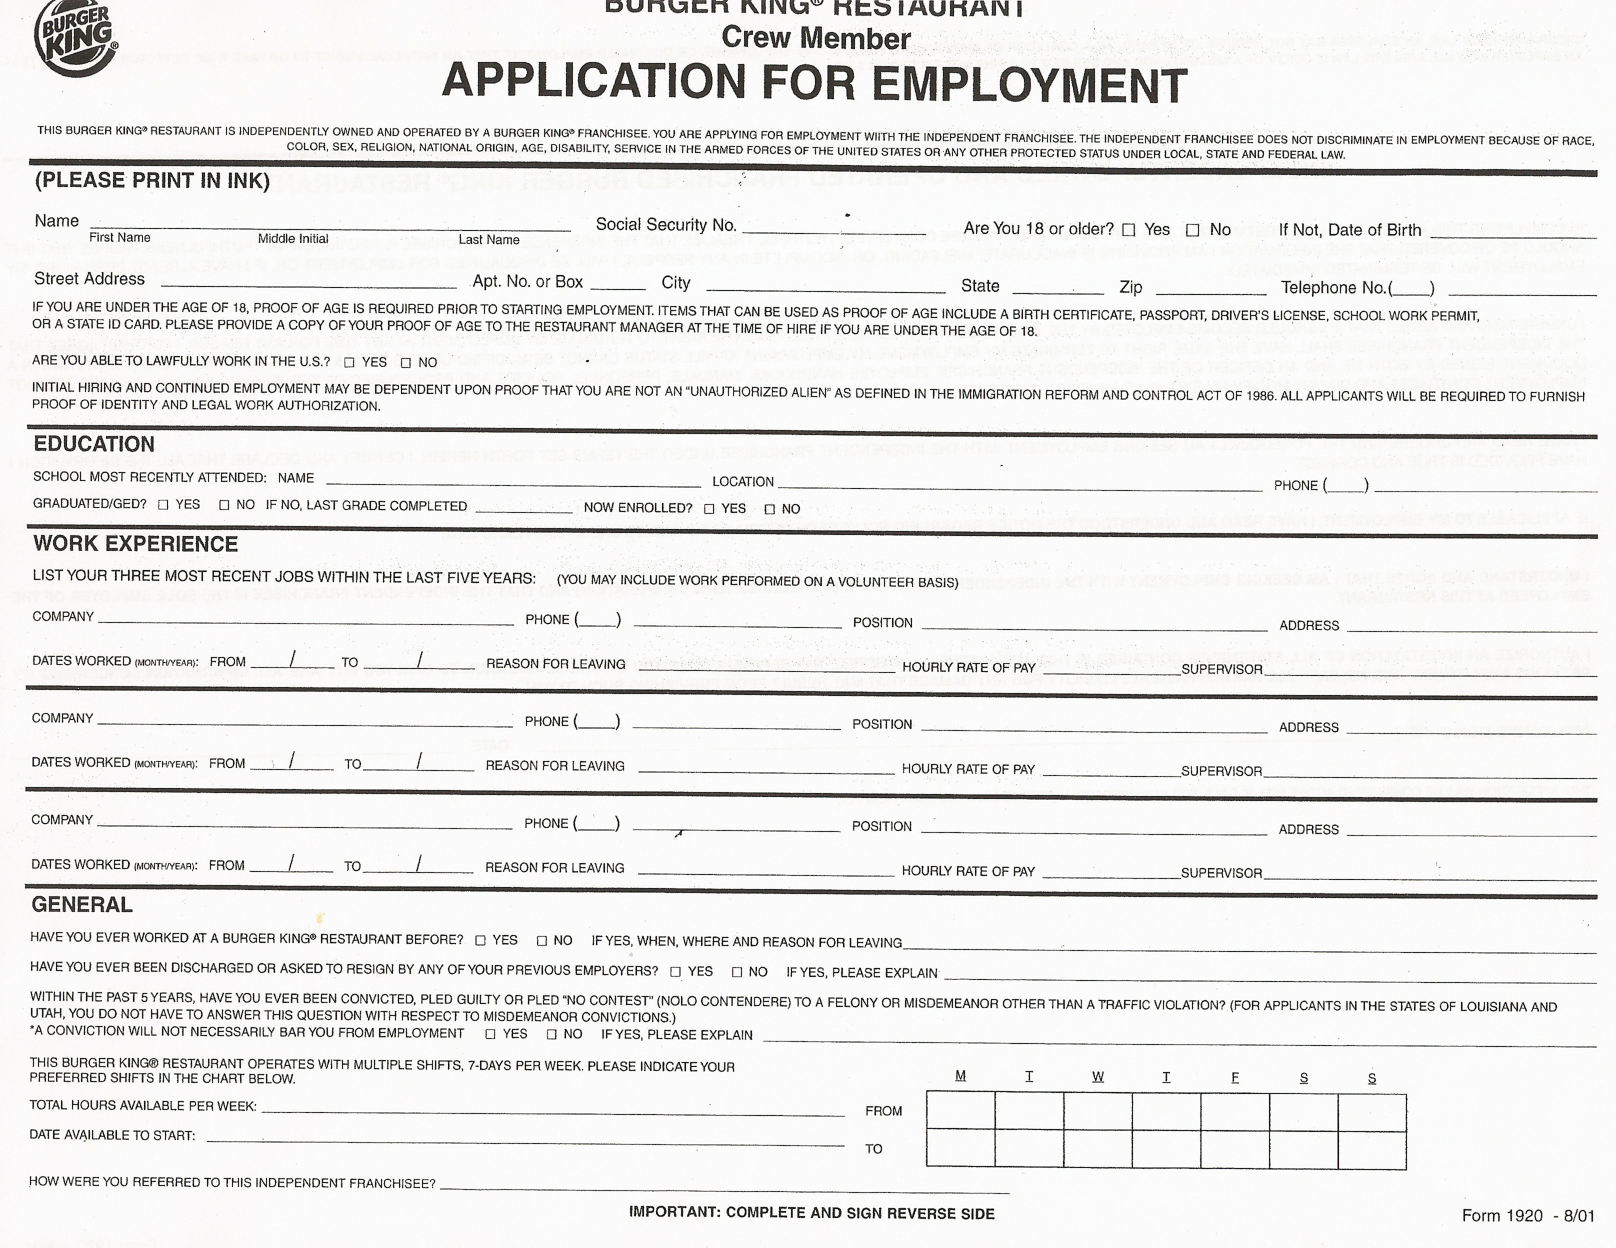 Job Application Printable Job Applications Printable Job Application - Free Printable Job Applications Online